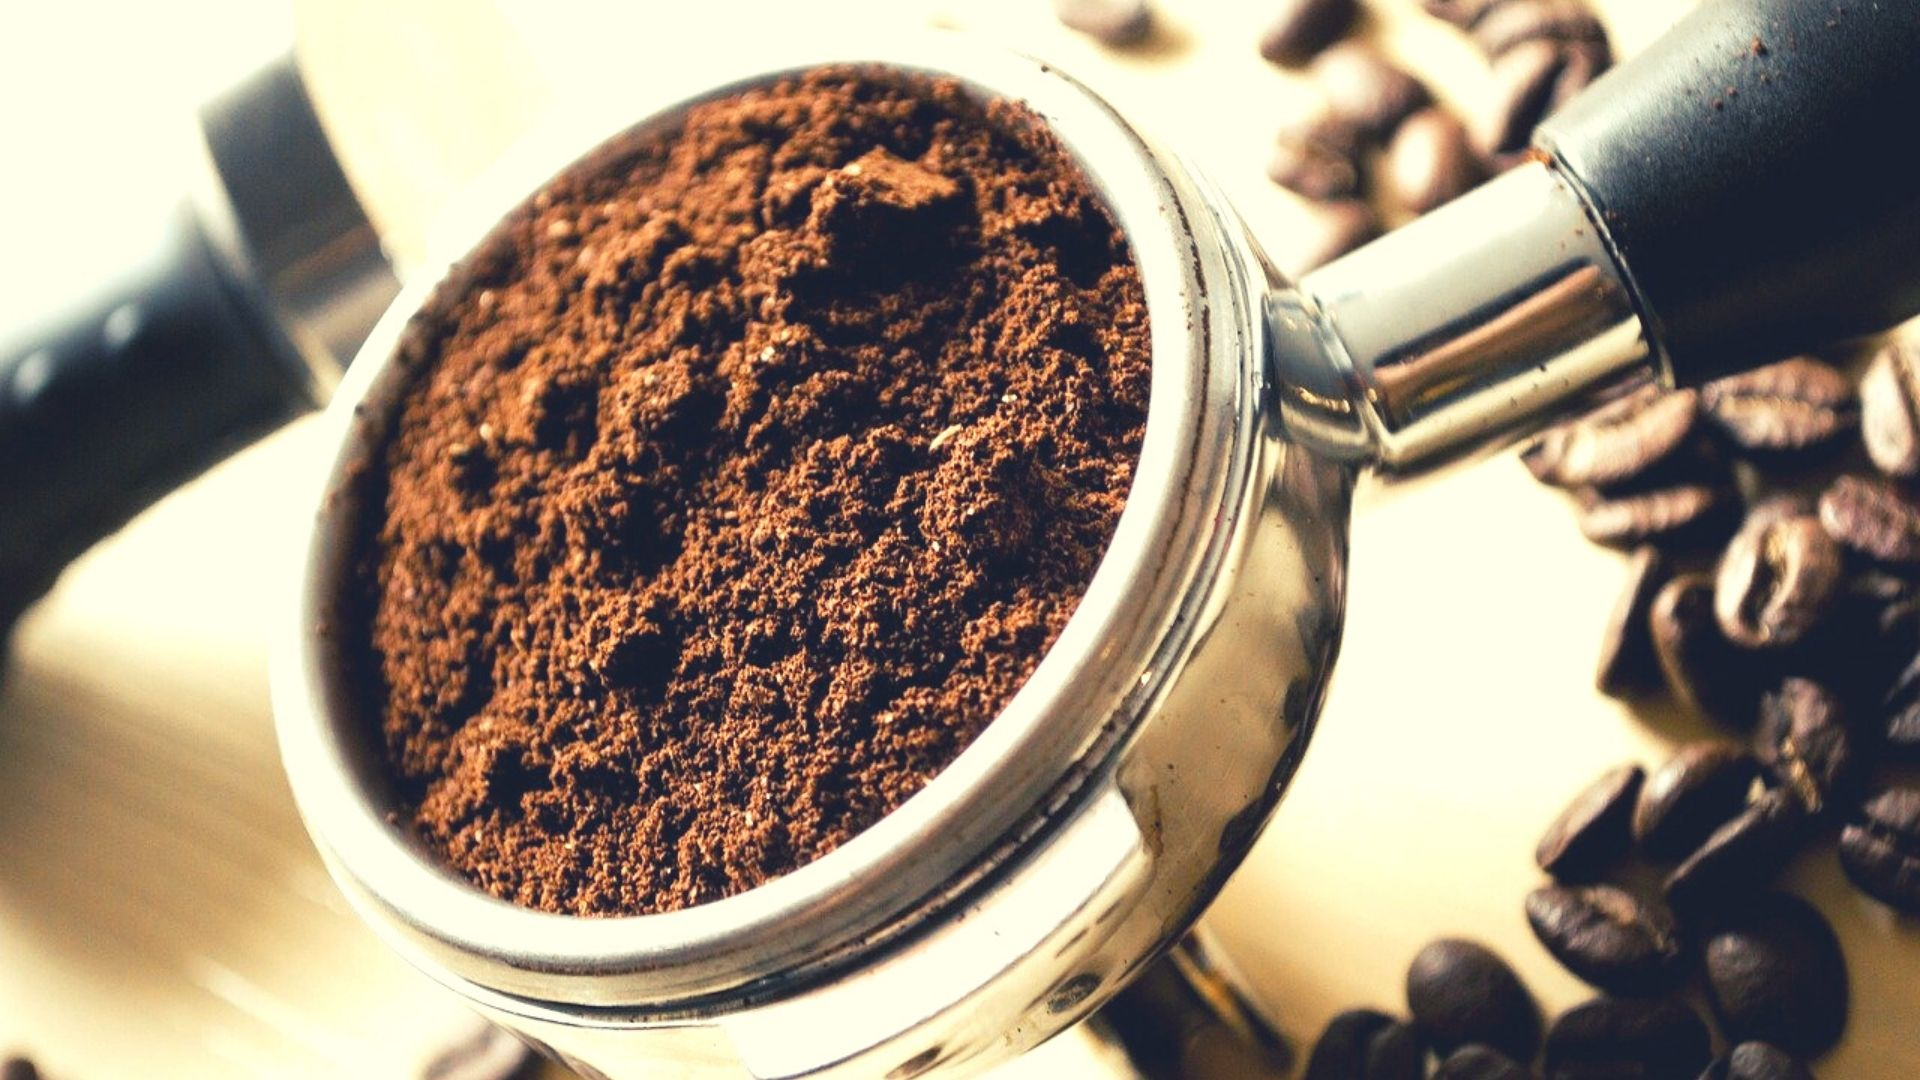 9 Great Things to do With Used Coffee Grounds